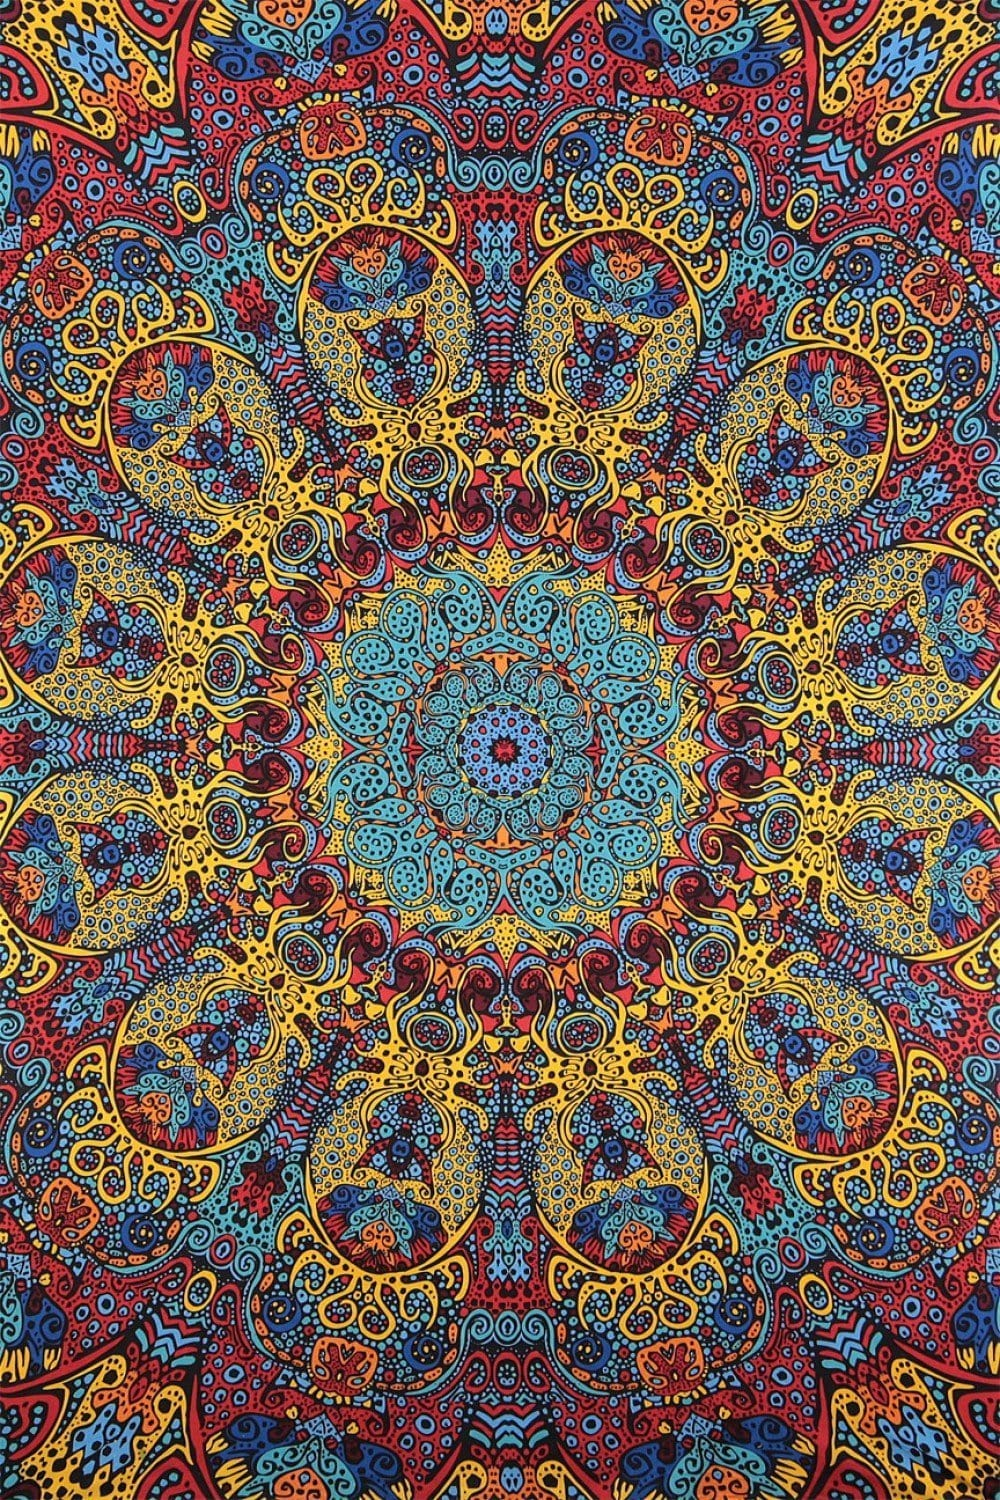 Tapestries 3D - Psychedelic Sunburst - Tapestry 006272